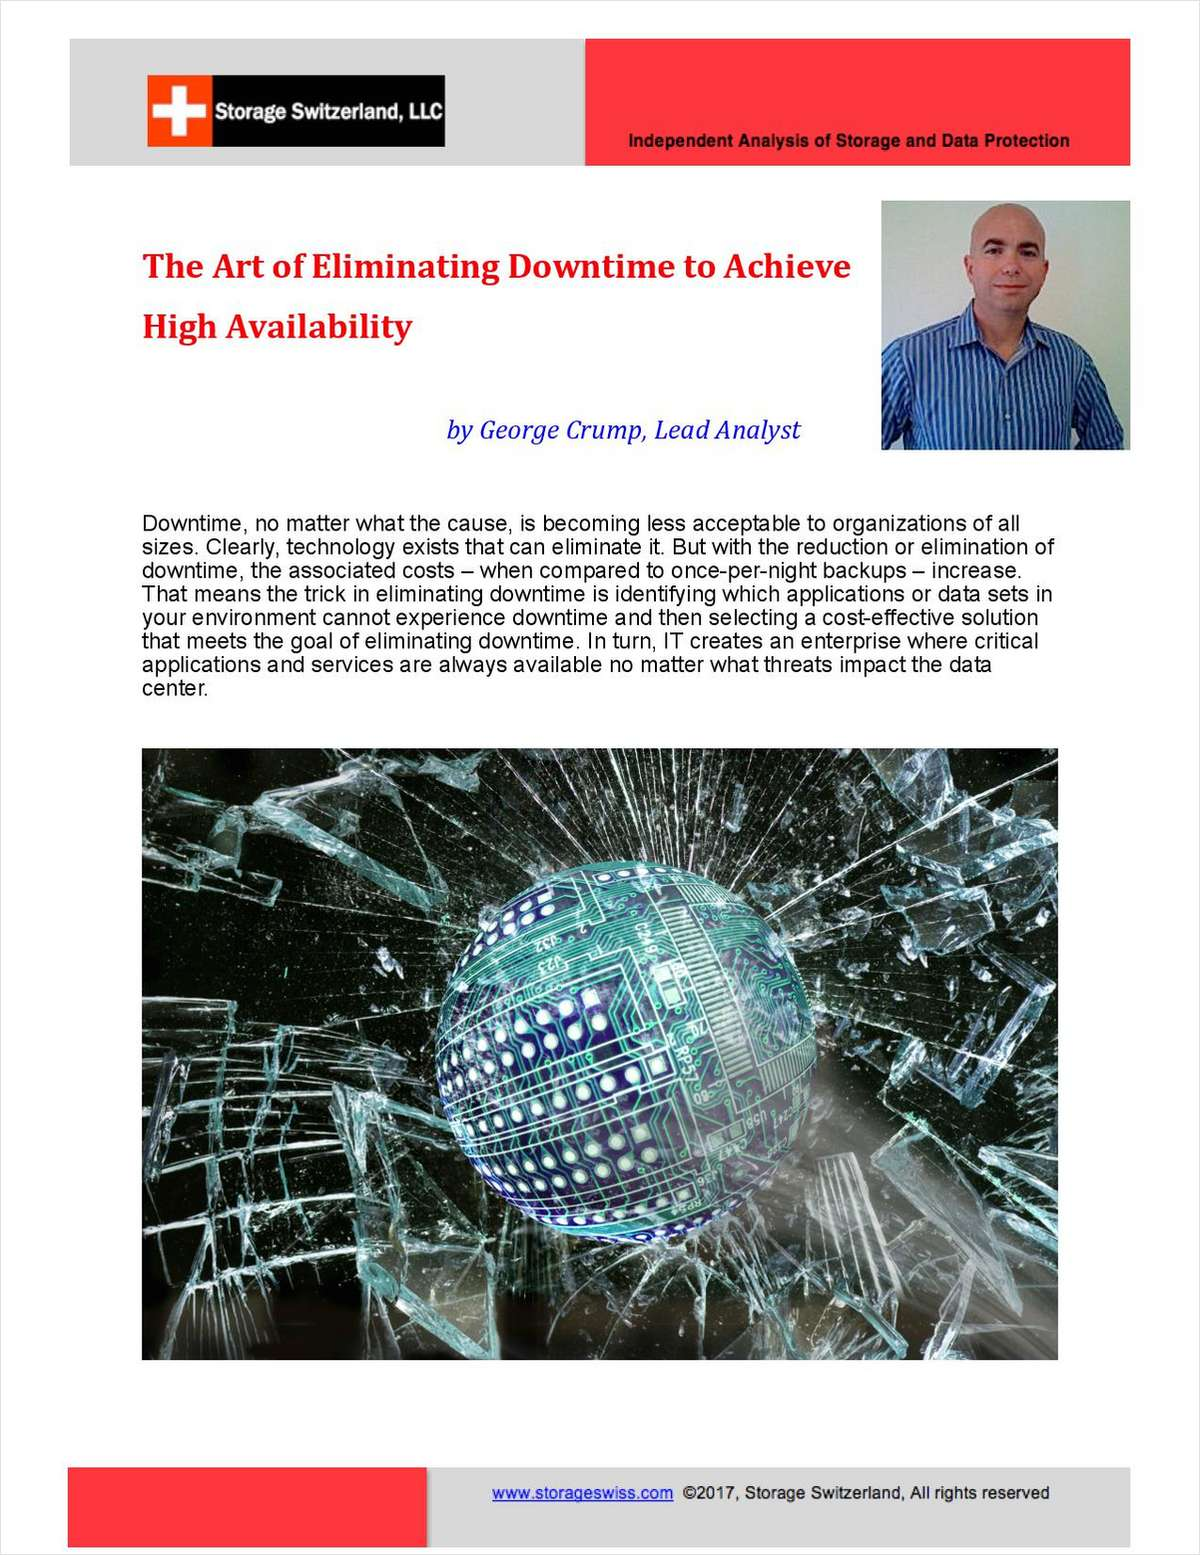 Art of Eliminating Downtime to Achieve High Availability